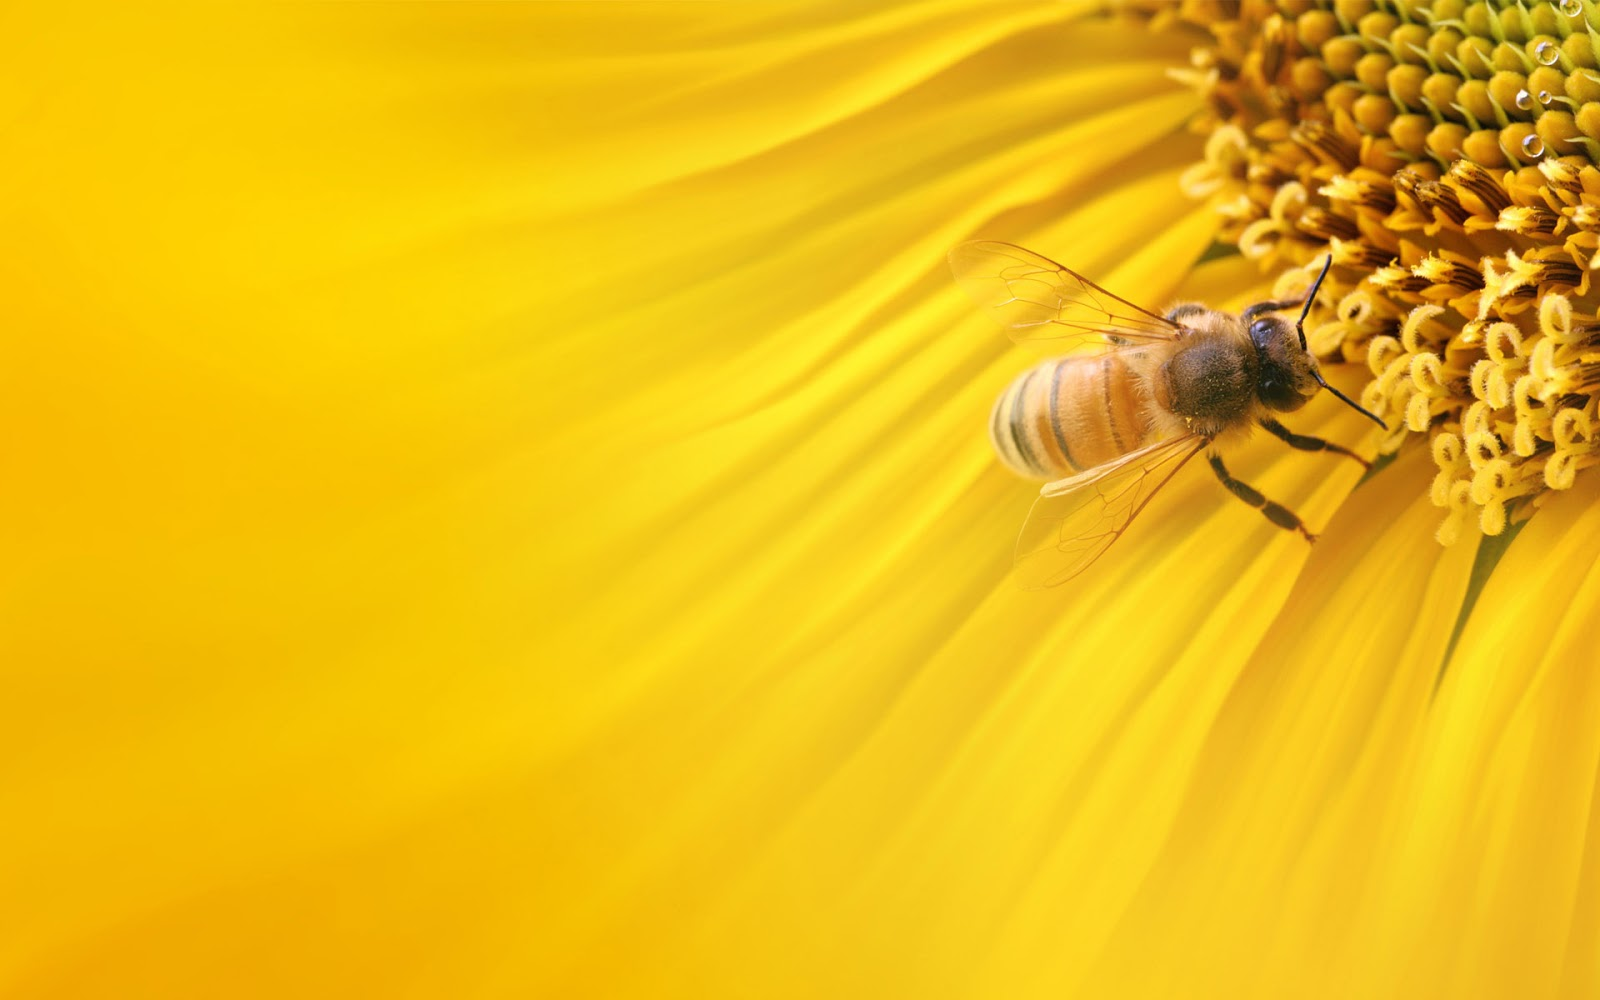 Bee Beautiful Spring Background wallpaper background